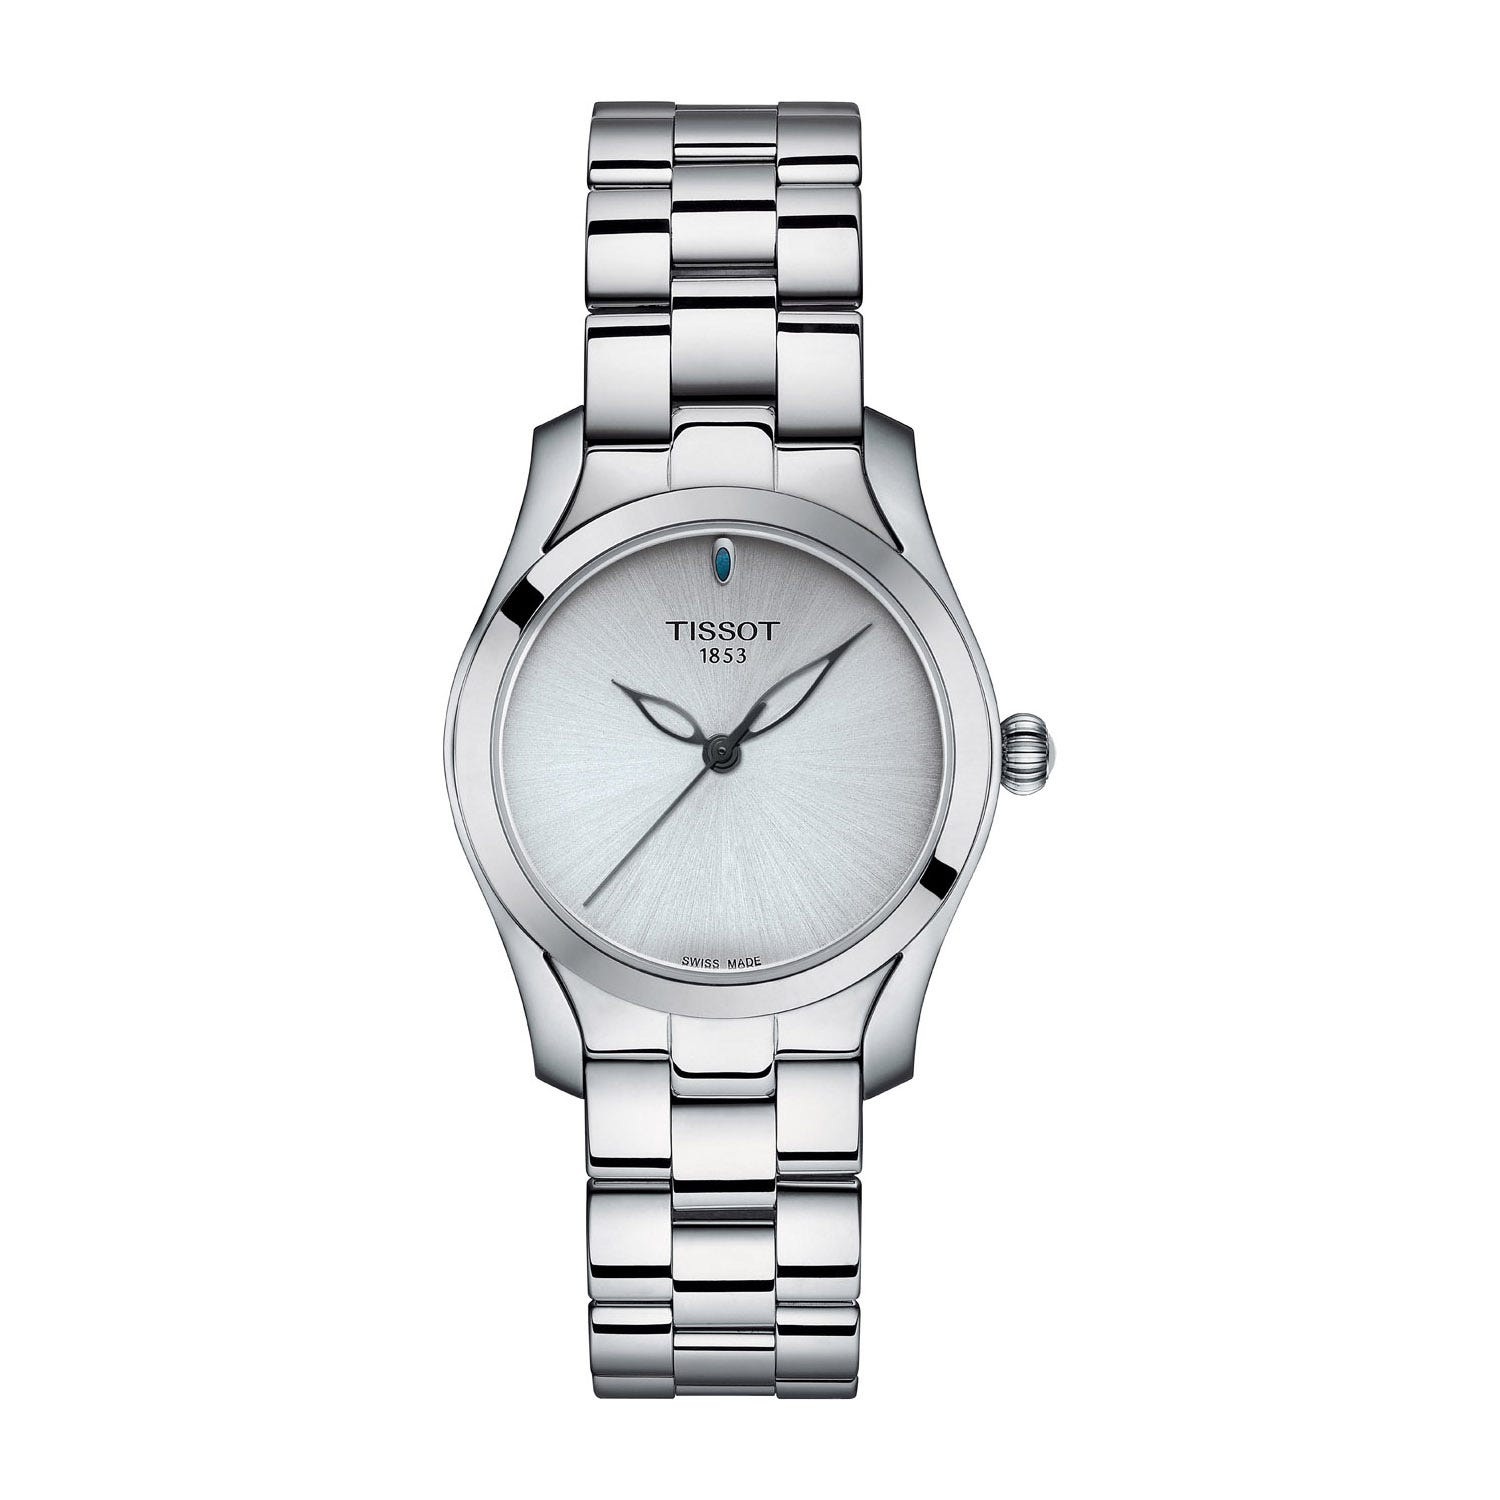 Tissot T-Classic Everytime Swissmatic Stainless-Steel Men's Watch